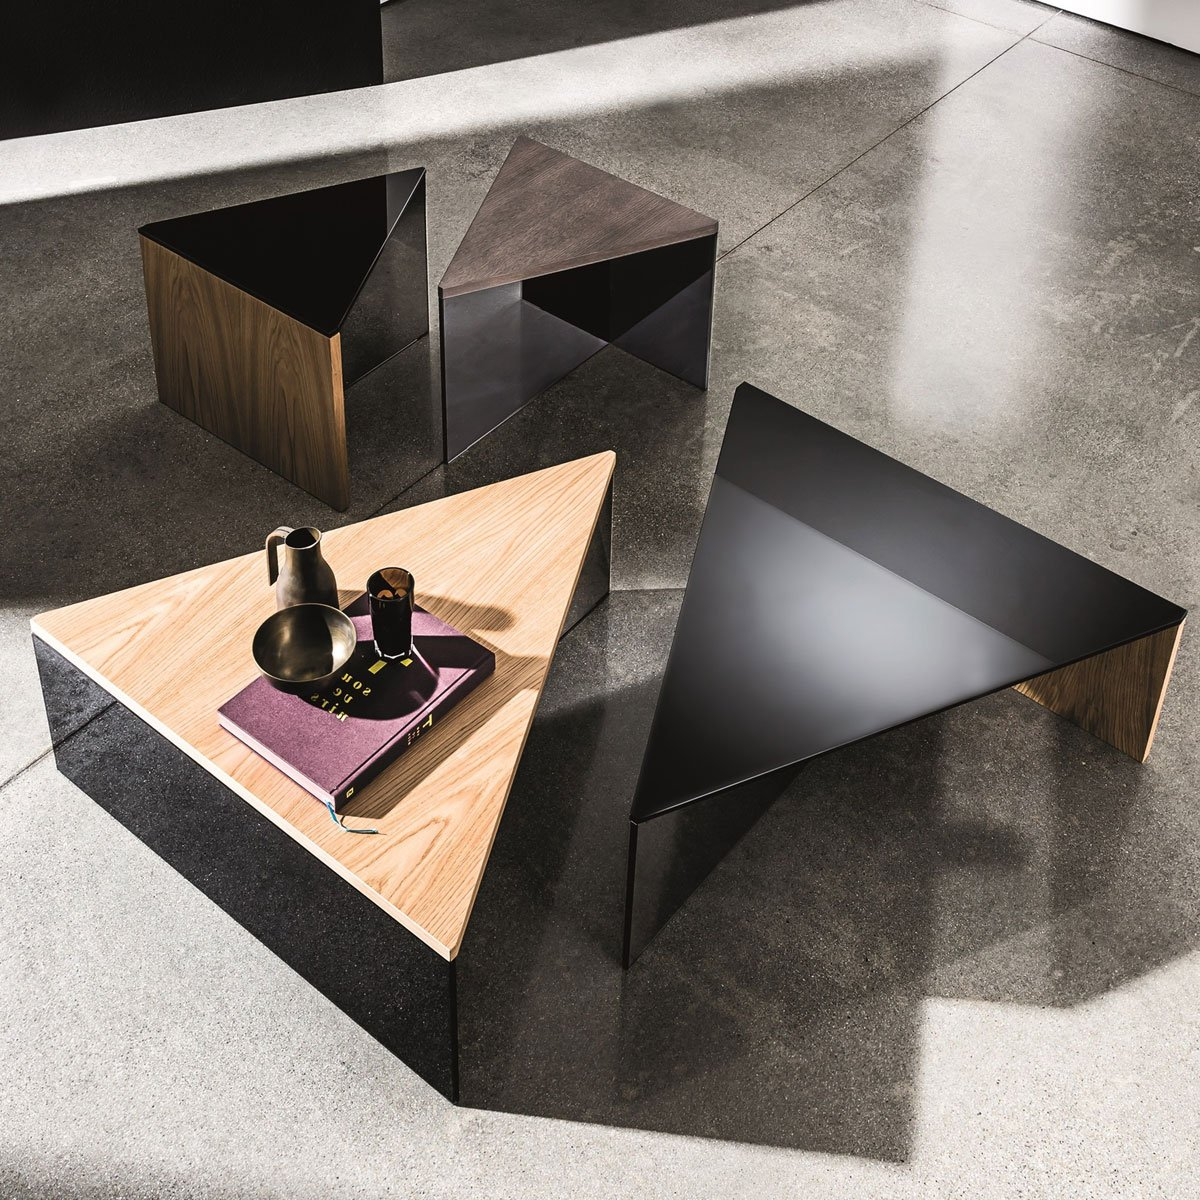 Regolo Triangular Glass and Wood Coffee Table